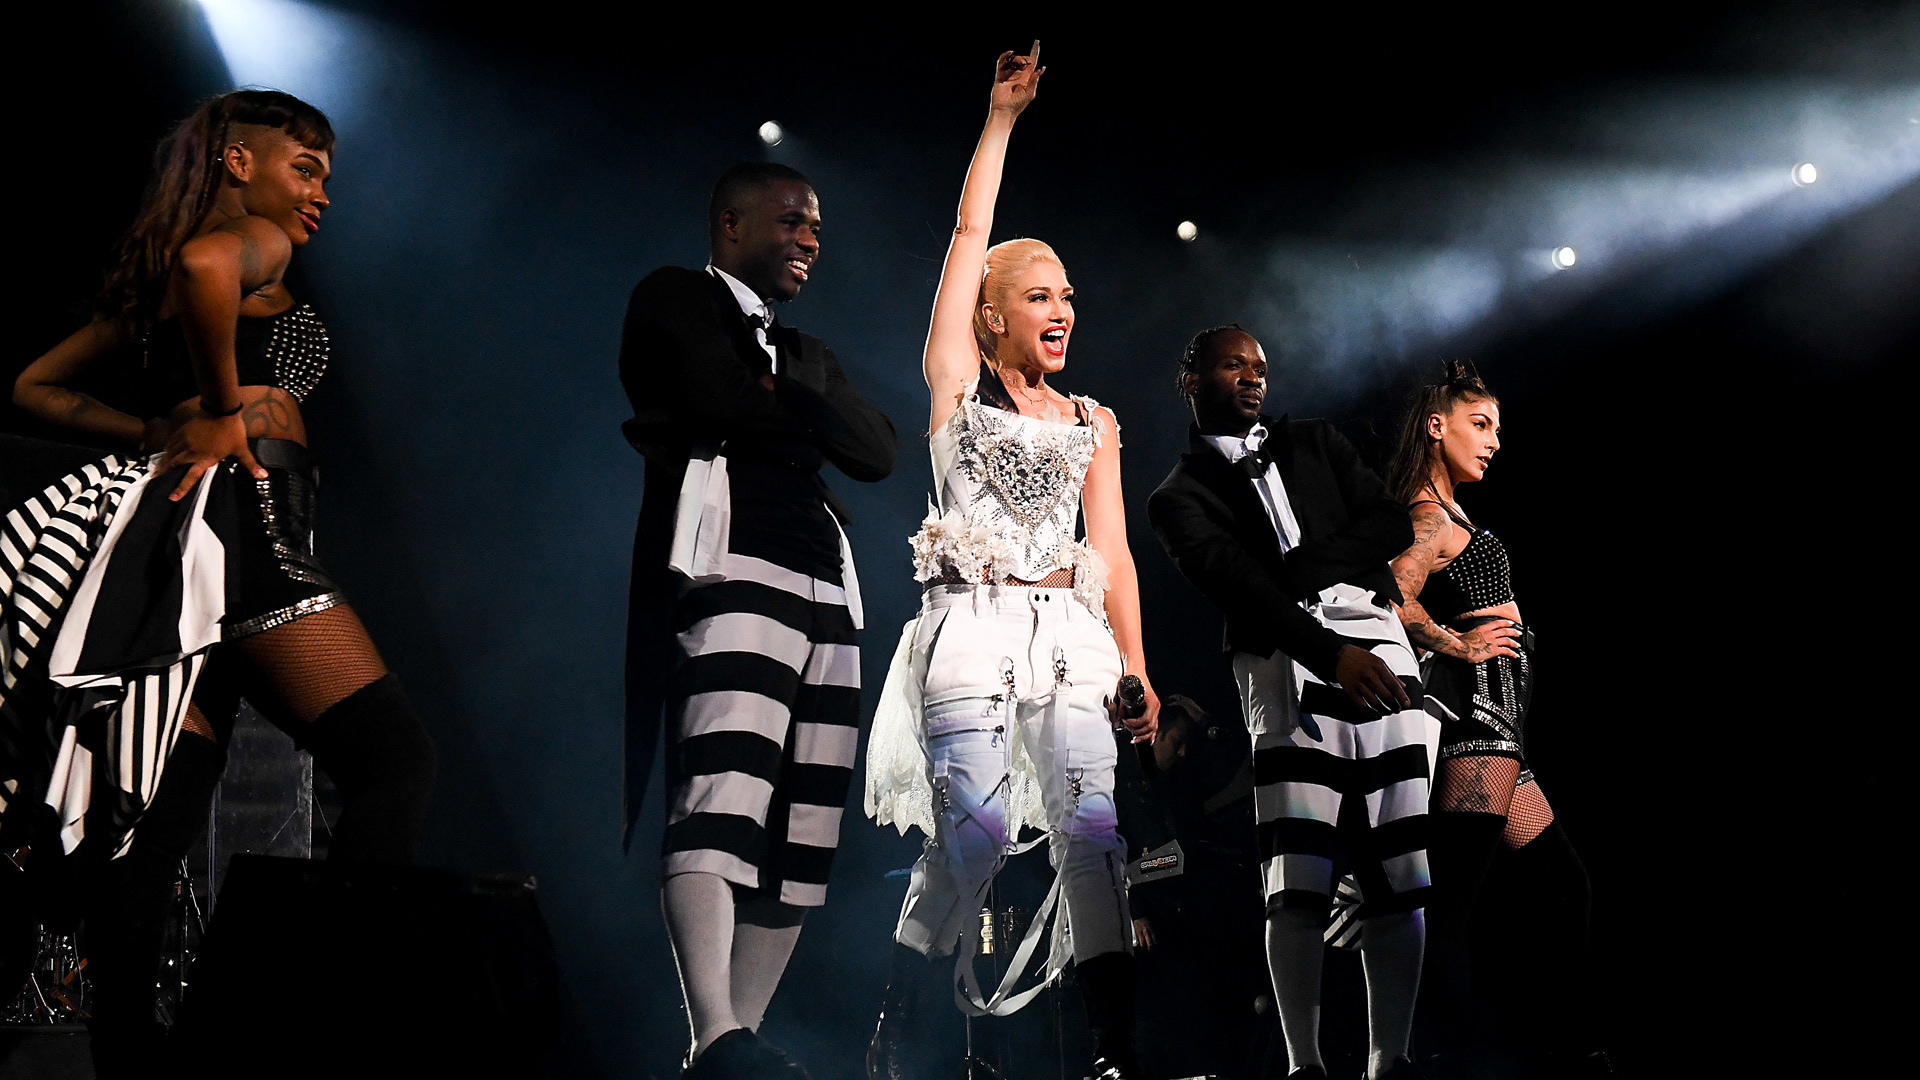 US singer Gwen Stefani stands on stage with her background dancers and happily stretches her arm into the air.